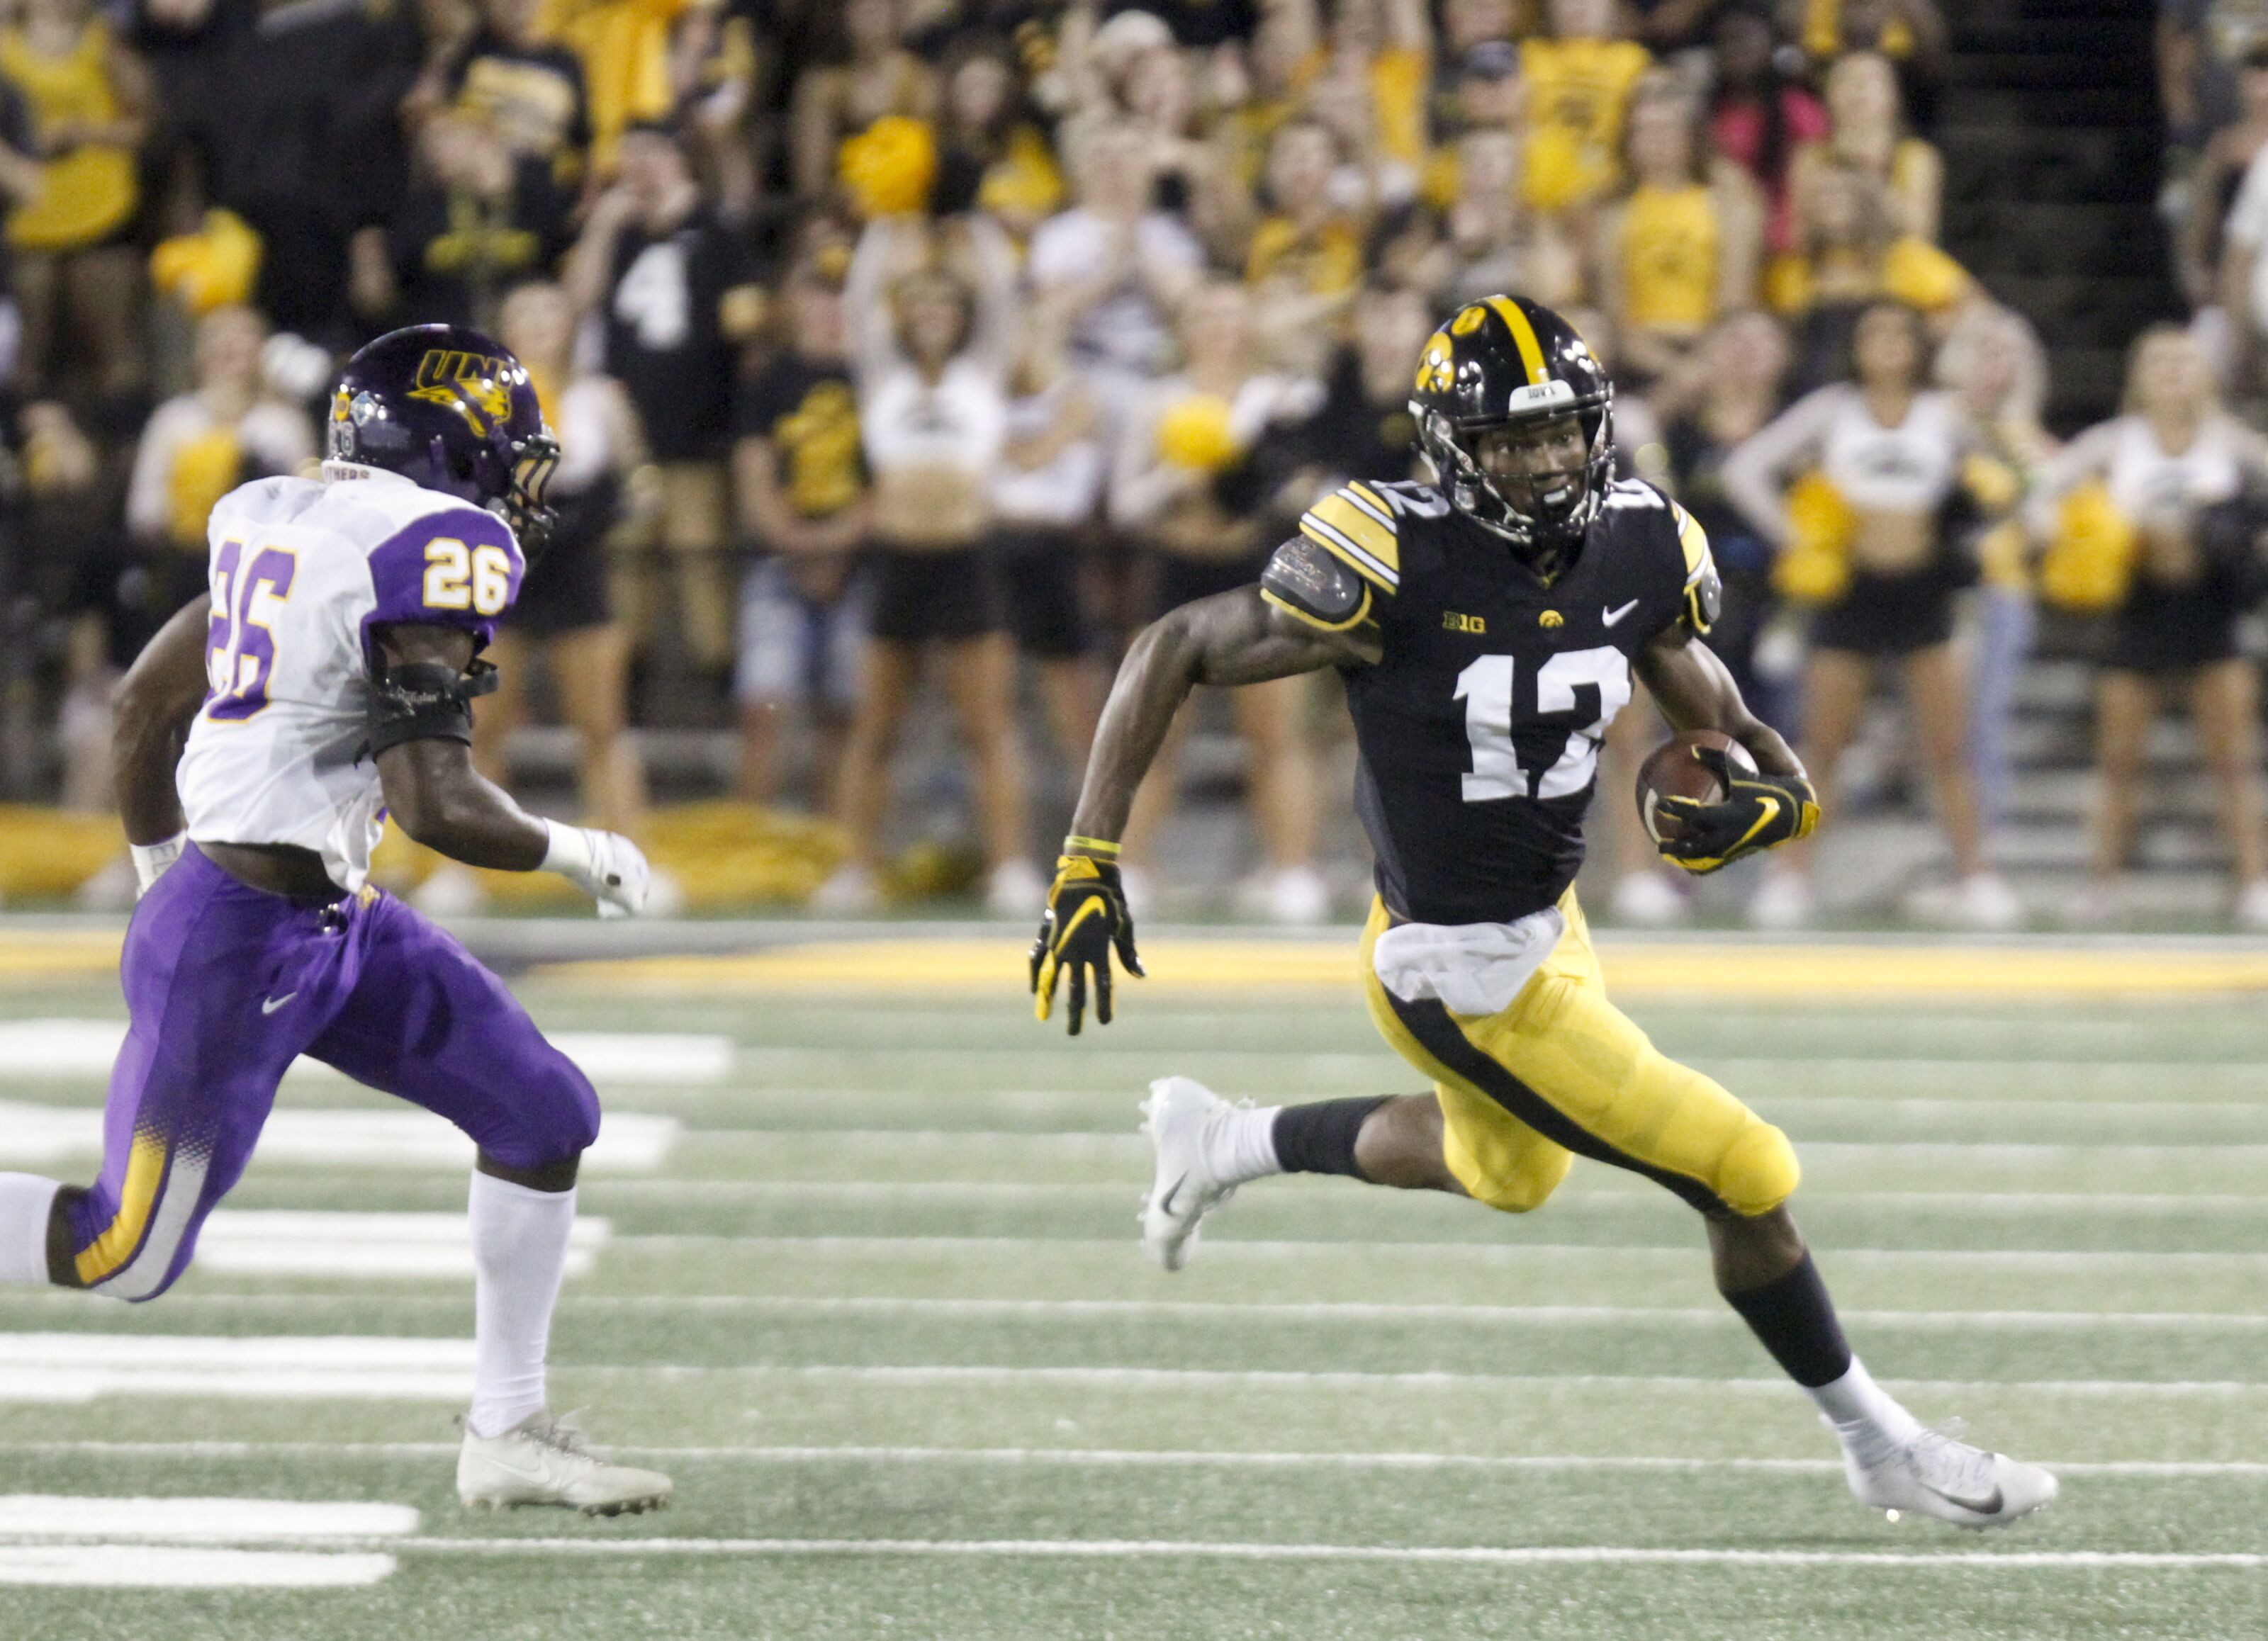 Iowa football: Hawks passing attack will be explosive in 2020